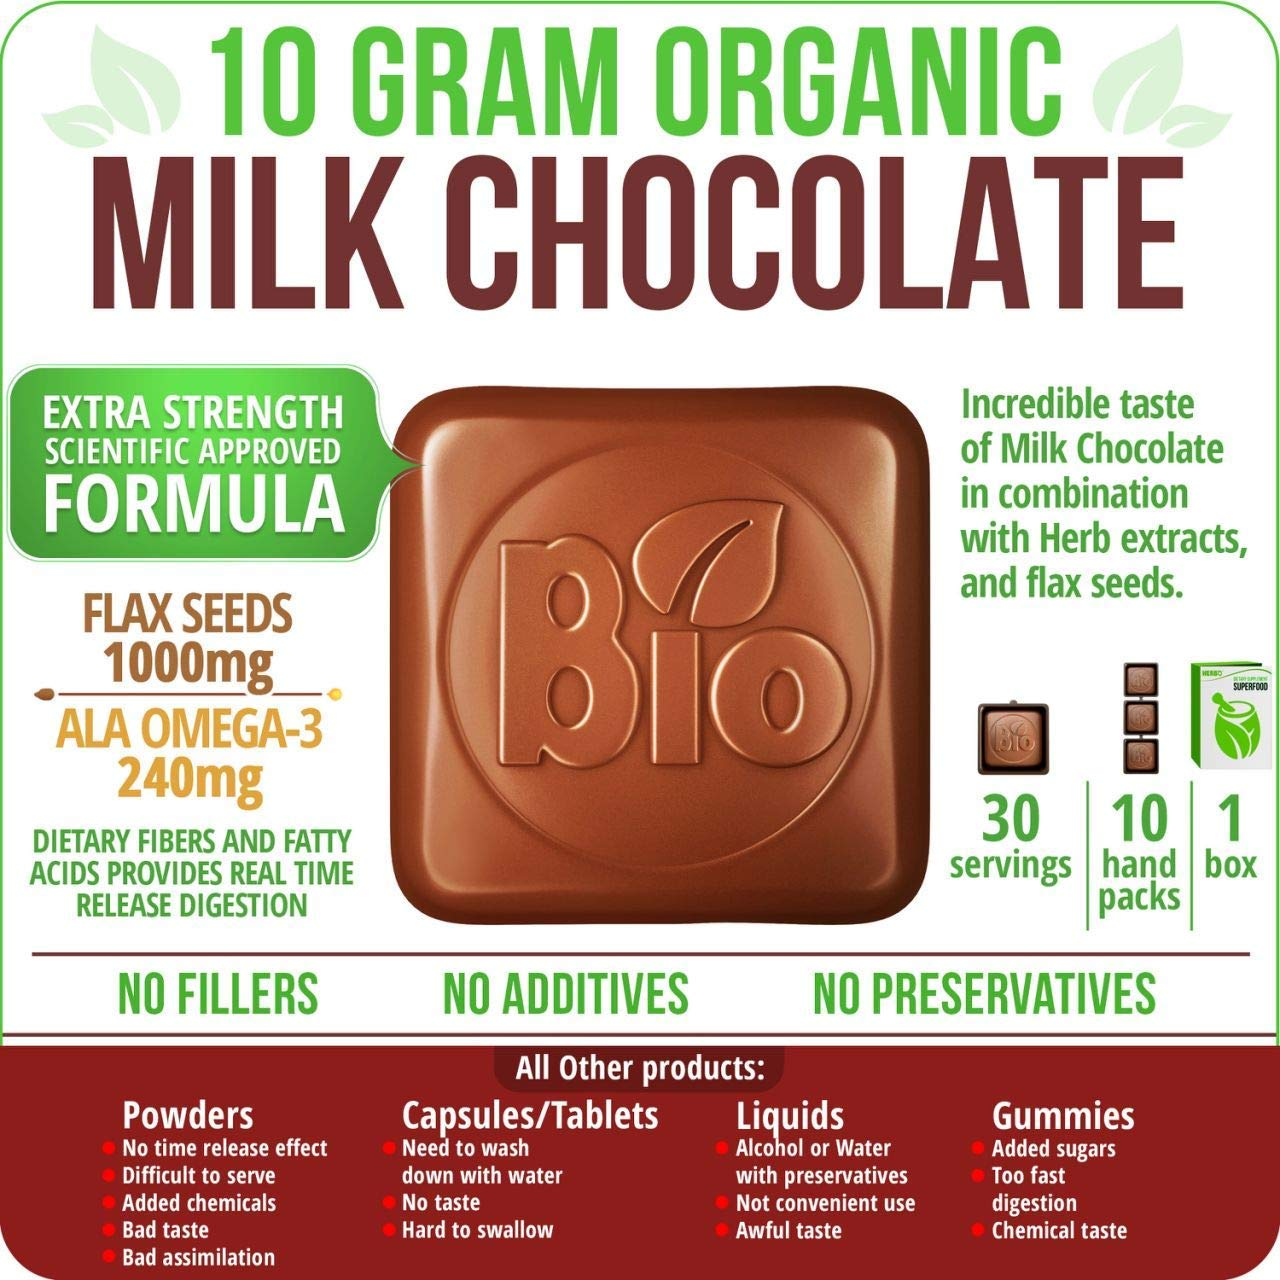 Herbo Superfood Biotin 5000 mcg in Organic Milk Chocolate - Healthy Hair, Skin & Nails Support, Produces Energy from Food, Enhances Metabolism - 60 Delicious Omega-3 Enriched Bars Non-GMO, Gluten Free